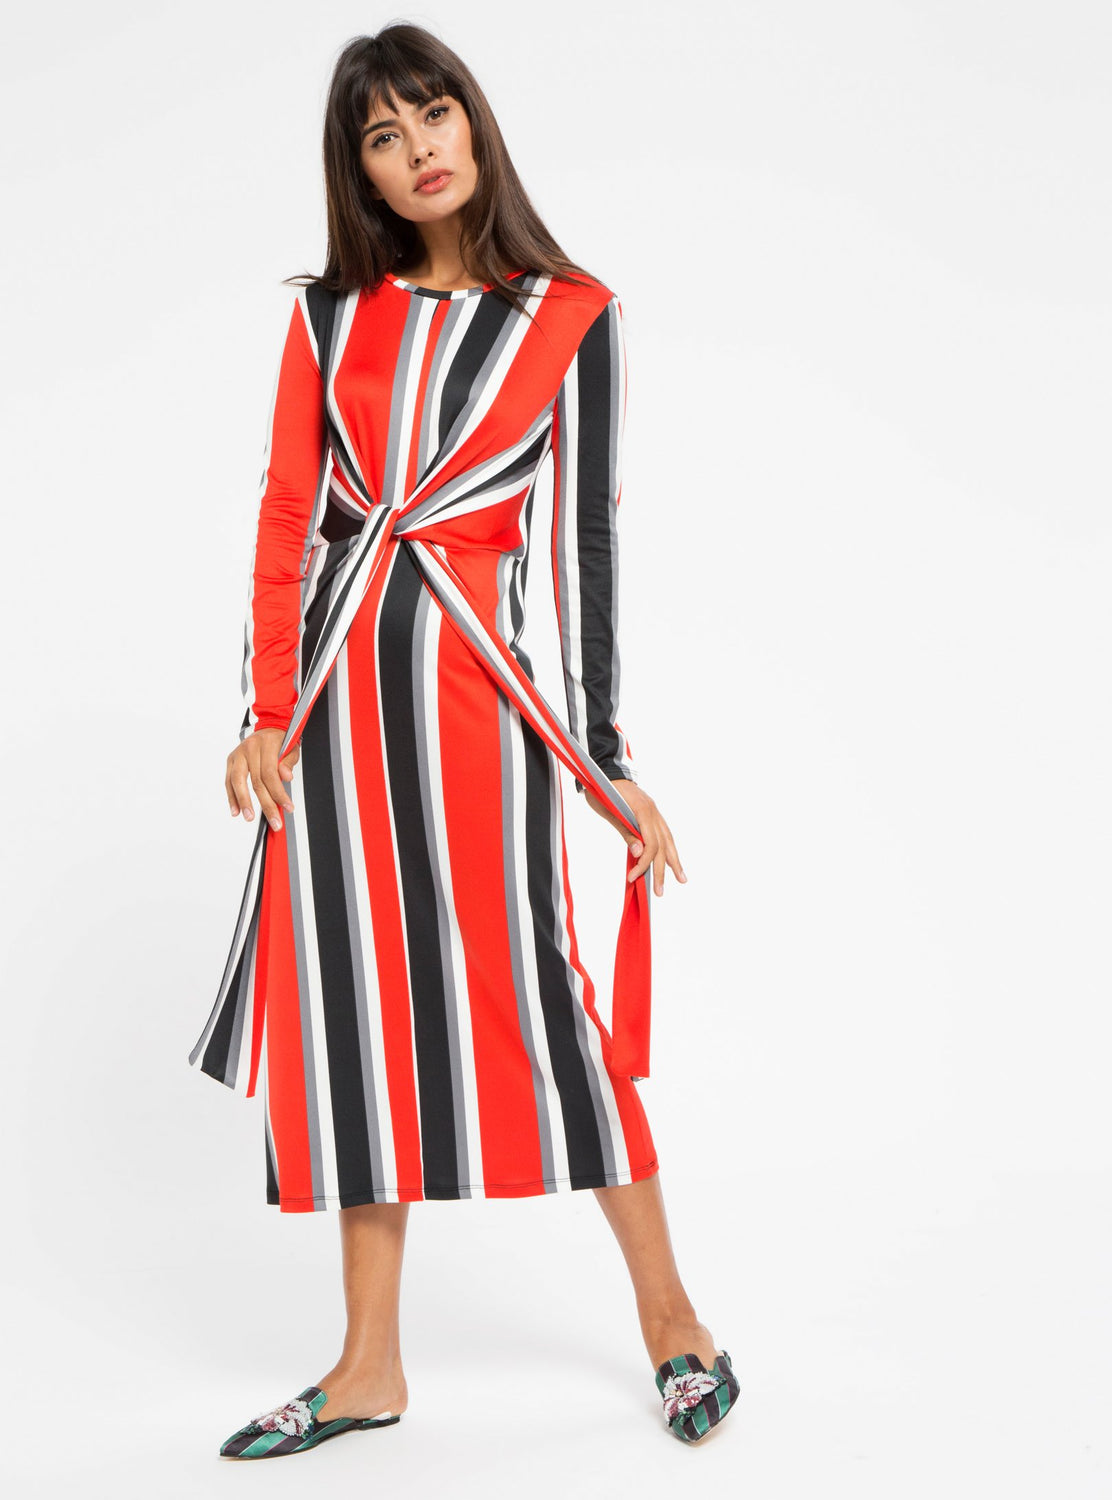 STORE WF Red Tie Front Stripe Midi Dress Modest Stripe Midi Dress with Long Sleeves and Tie Front in Red